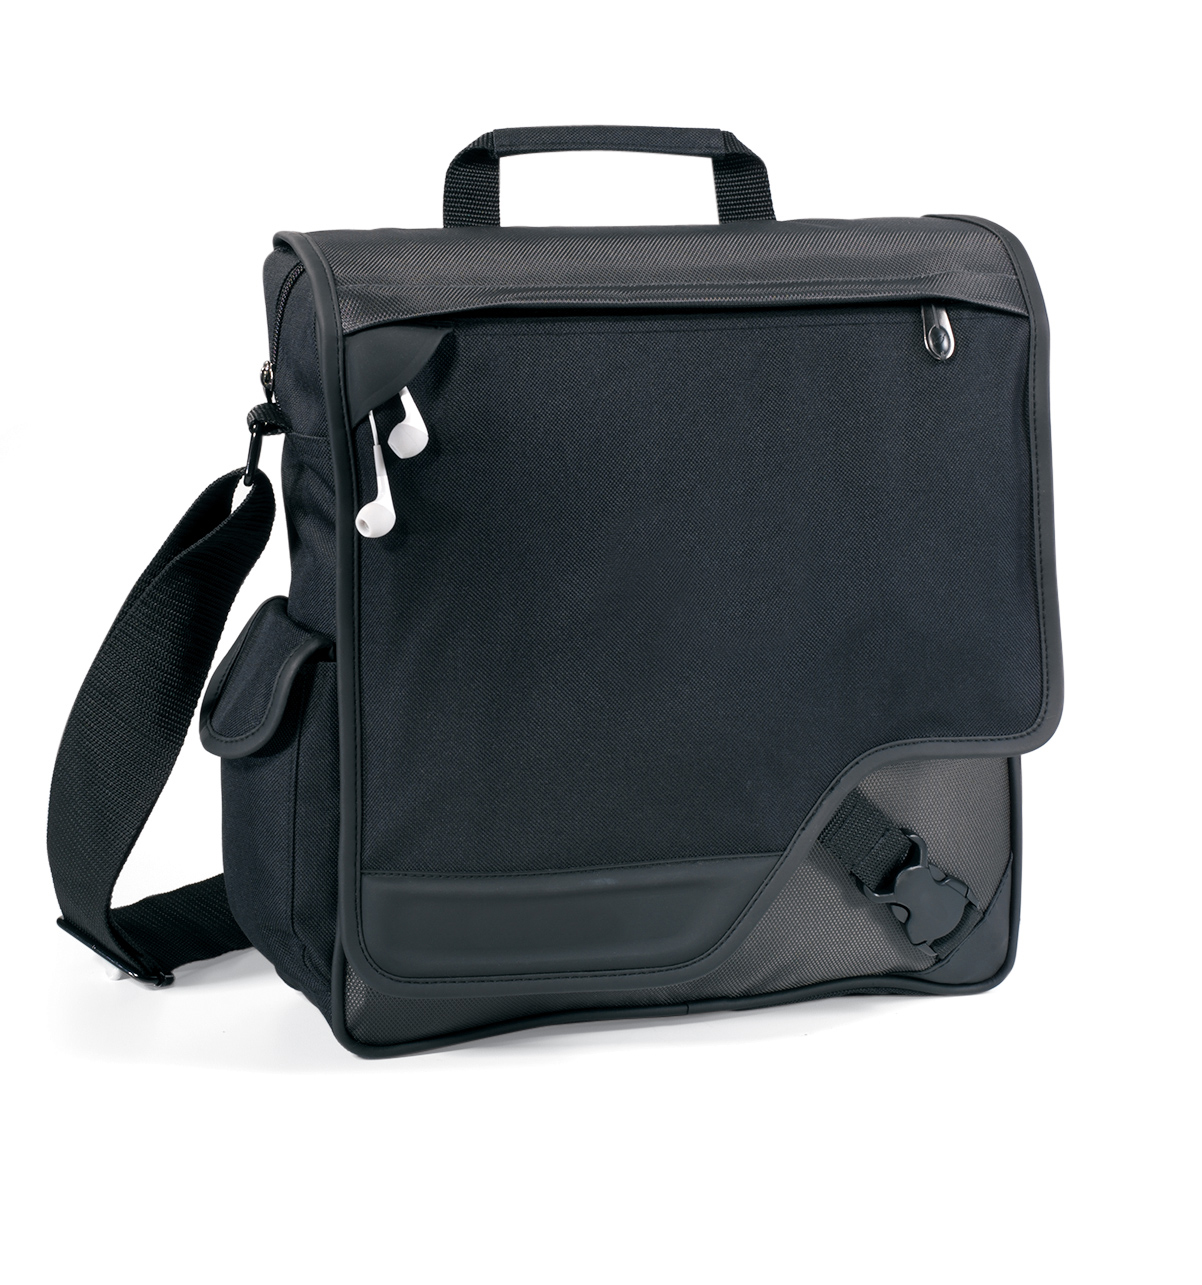 Gemline 2622 - Satellite Vertical Messenger Bag